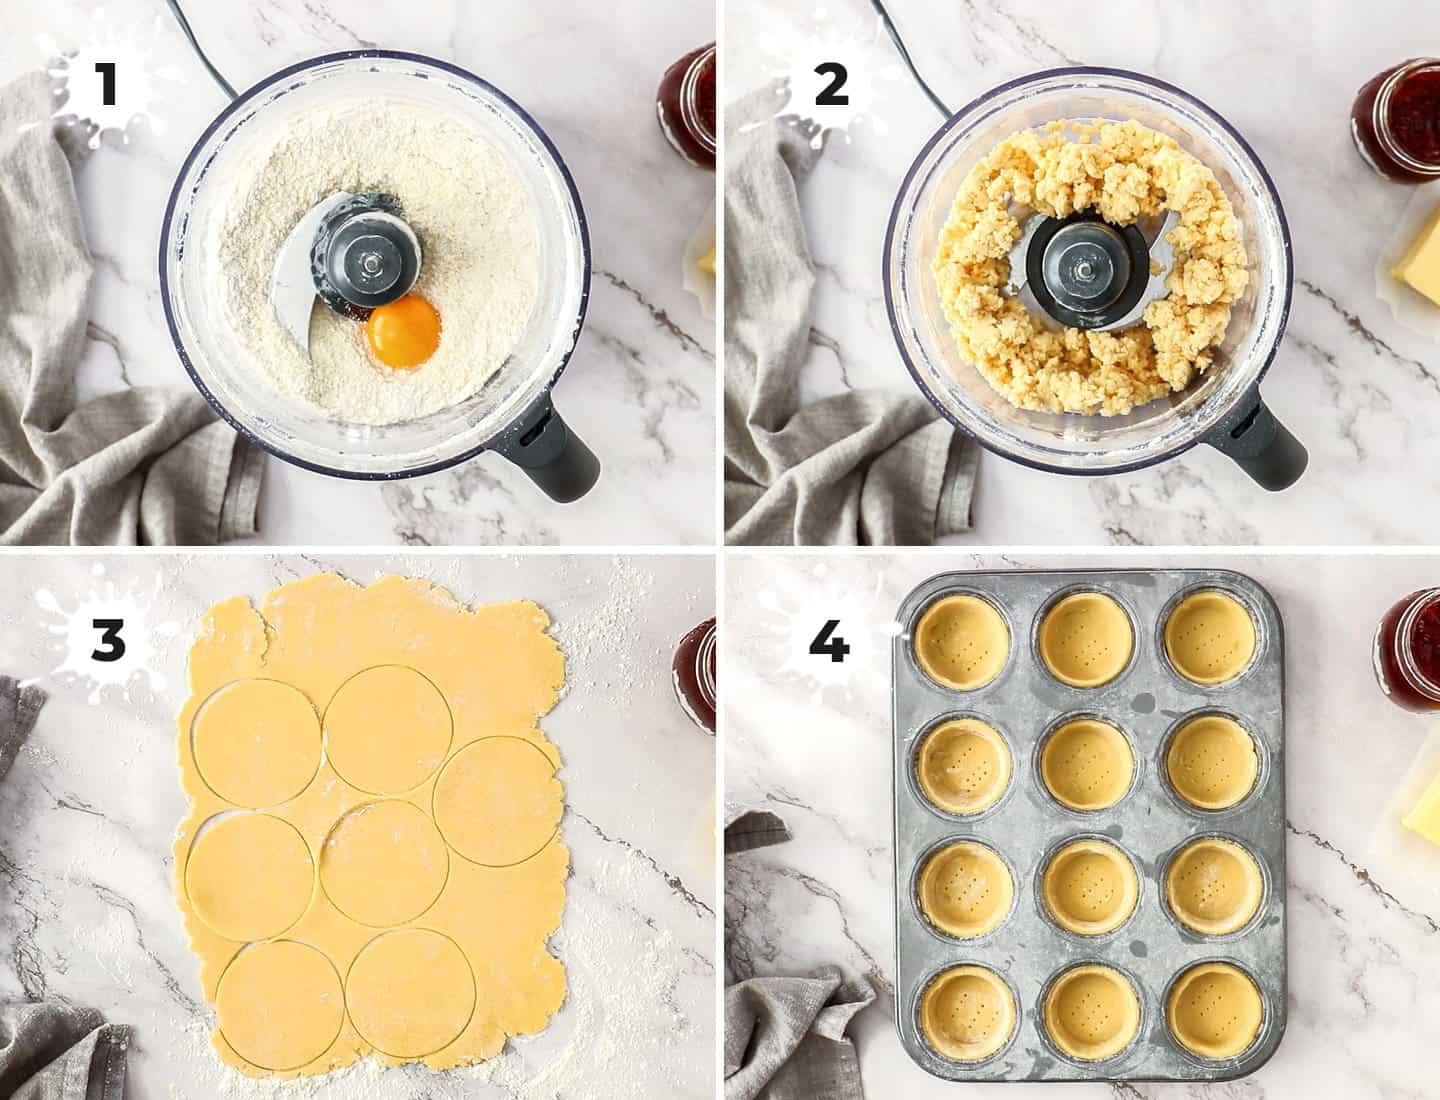 A collage of 4 images showing how to make and roll the pastry for the tarts.